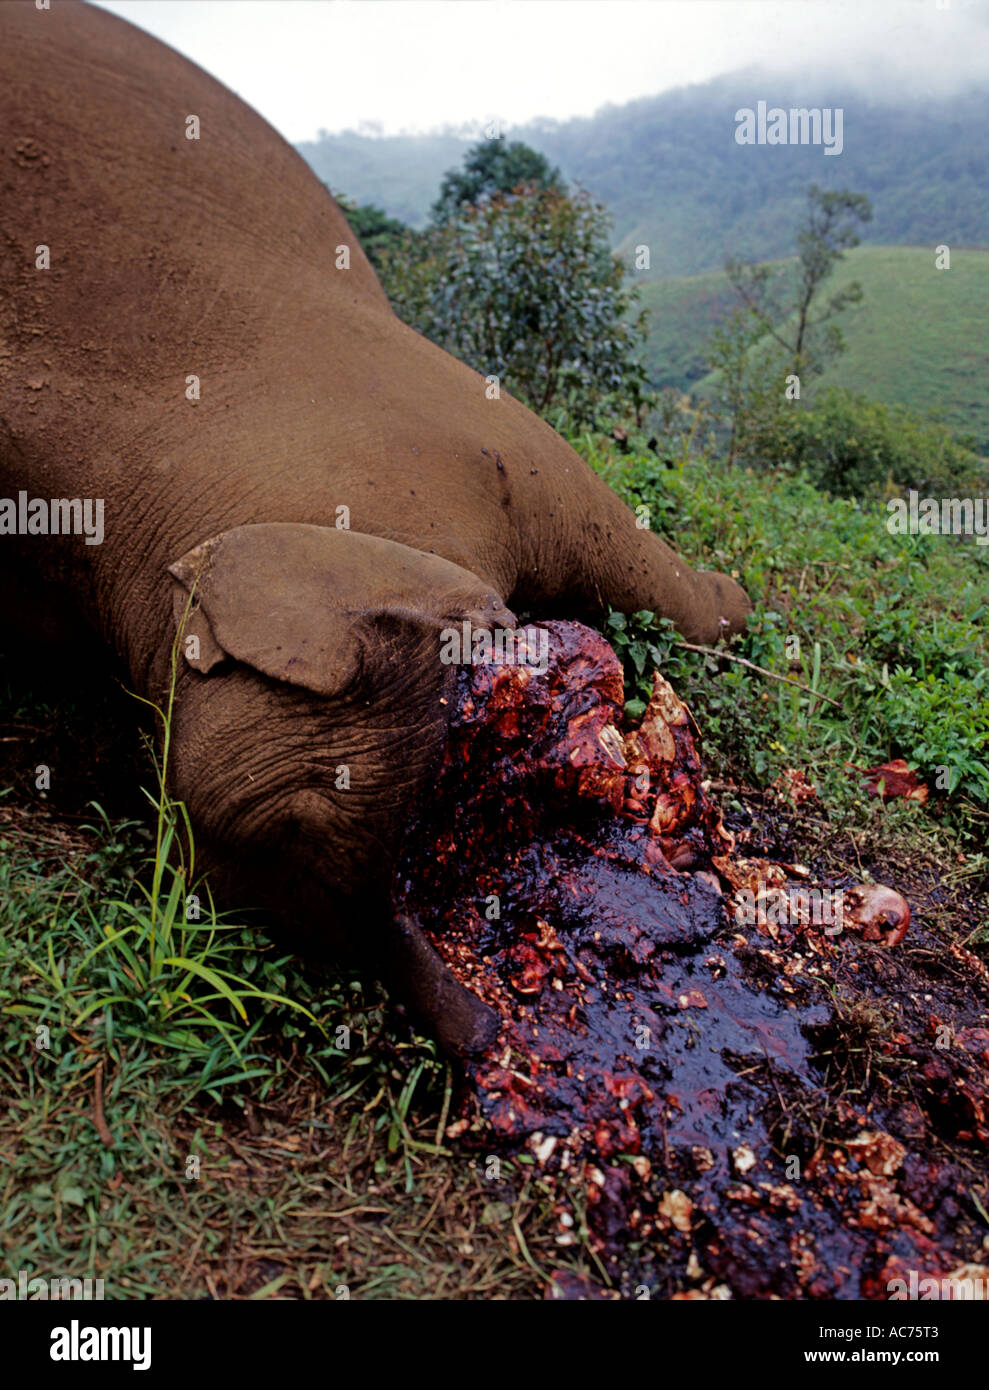 CRUELTY OF ELEPHANT POACHING IN THE WESTERN GHATS, MUNNAR IDUKKI DISTRICT - Stock Image